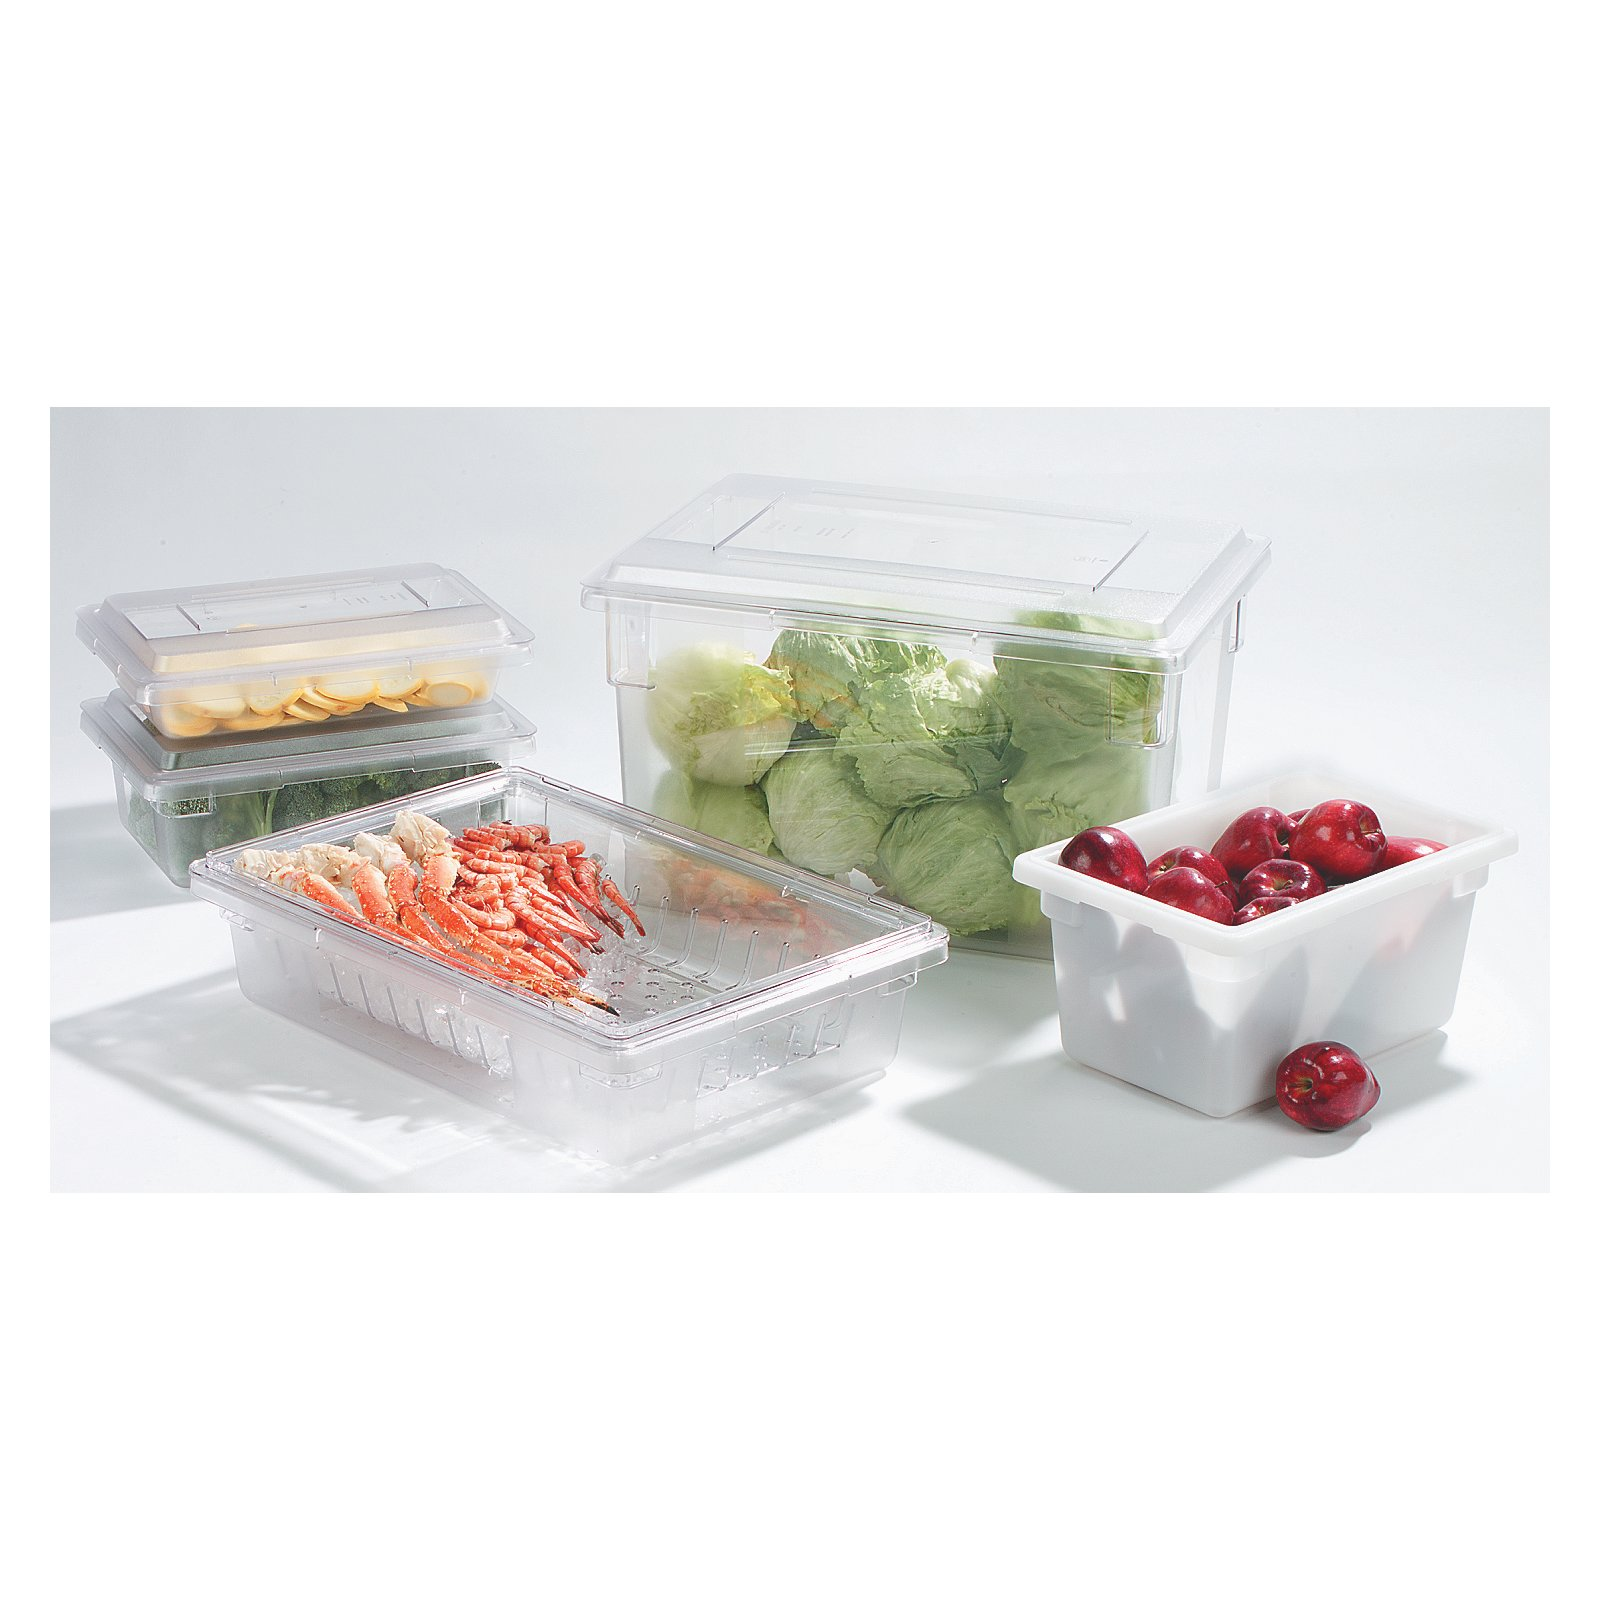 1062107 - StorPlus™ Polycarbonate Food Box Storage Container 8.5 Gallon 26  x 18  sc 1 st  Carlisle FoodService Products & 1062107 - StorPlus™ Polycarbonate Food Box Storage Container 8.5 ...